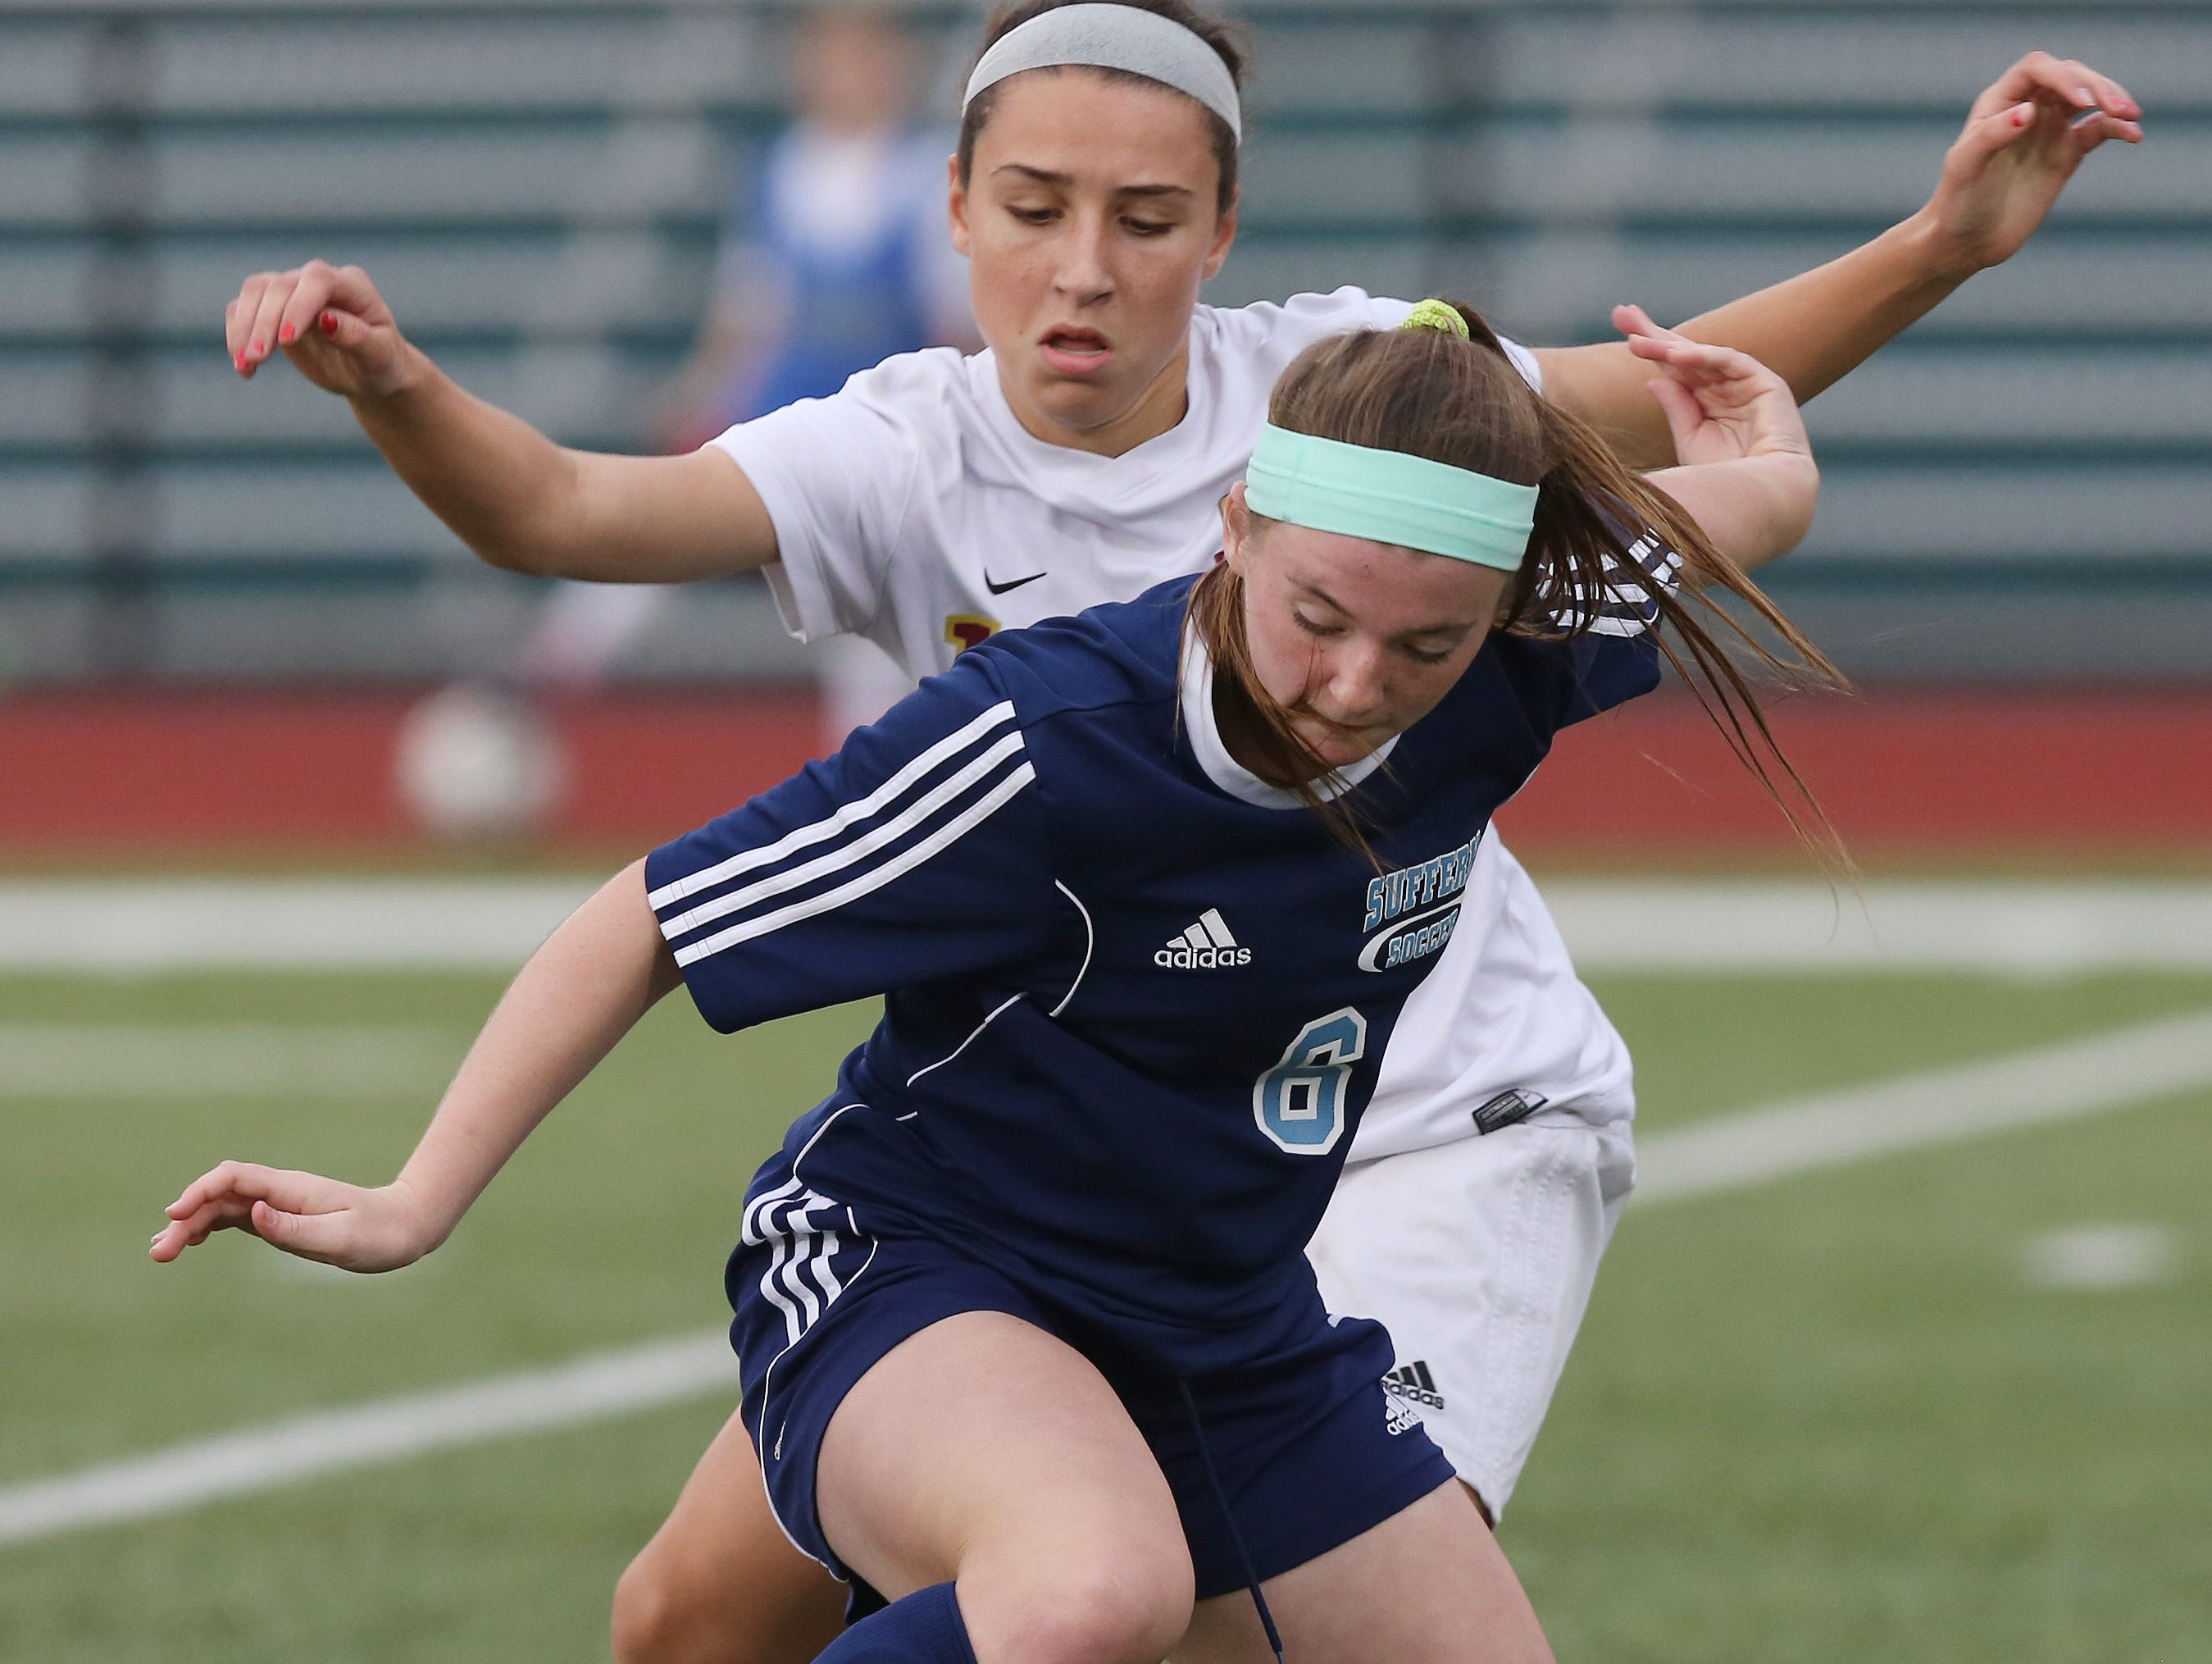 Suffern's Caitlin Hirsch (6) and Arlington's Allie Coon battle for ball control during the girls soccer Section 1 Class AA championship game at Yorktown High School Oct. 30, 2016. Arlington won the game 2-0.